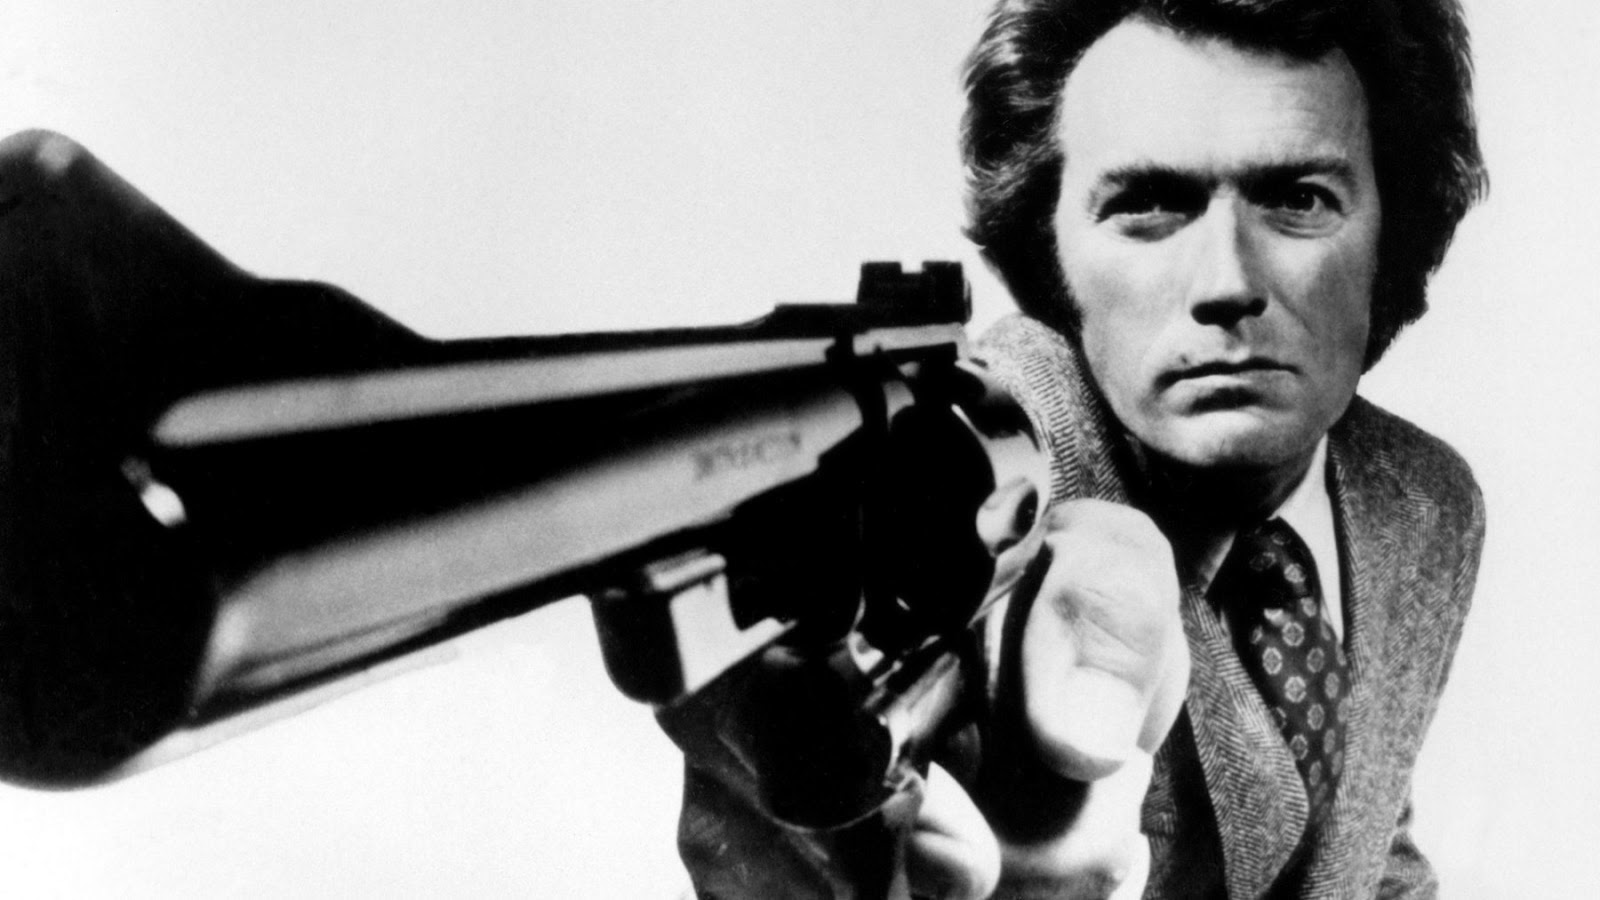 Dirty Harry and his big muthafucking gun!